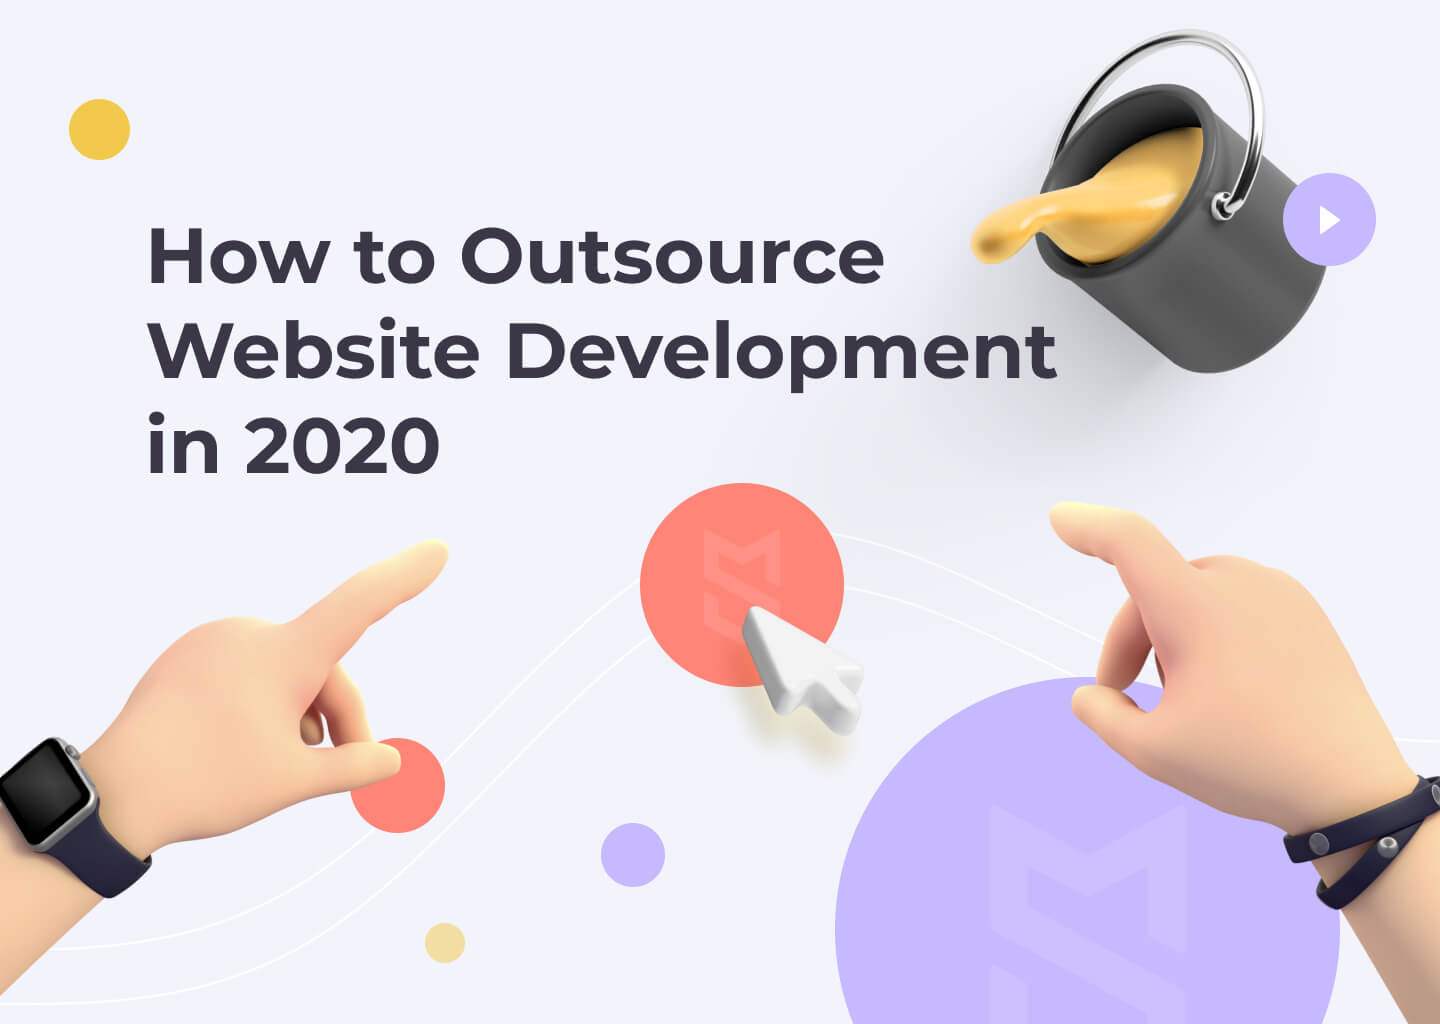 How to Outsource Website Development in 2020